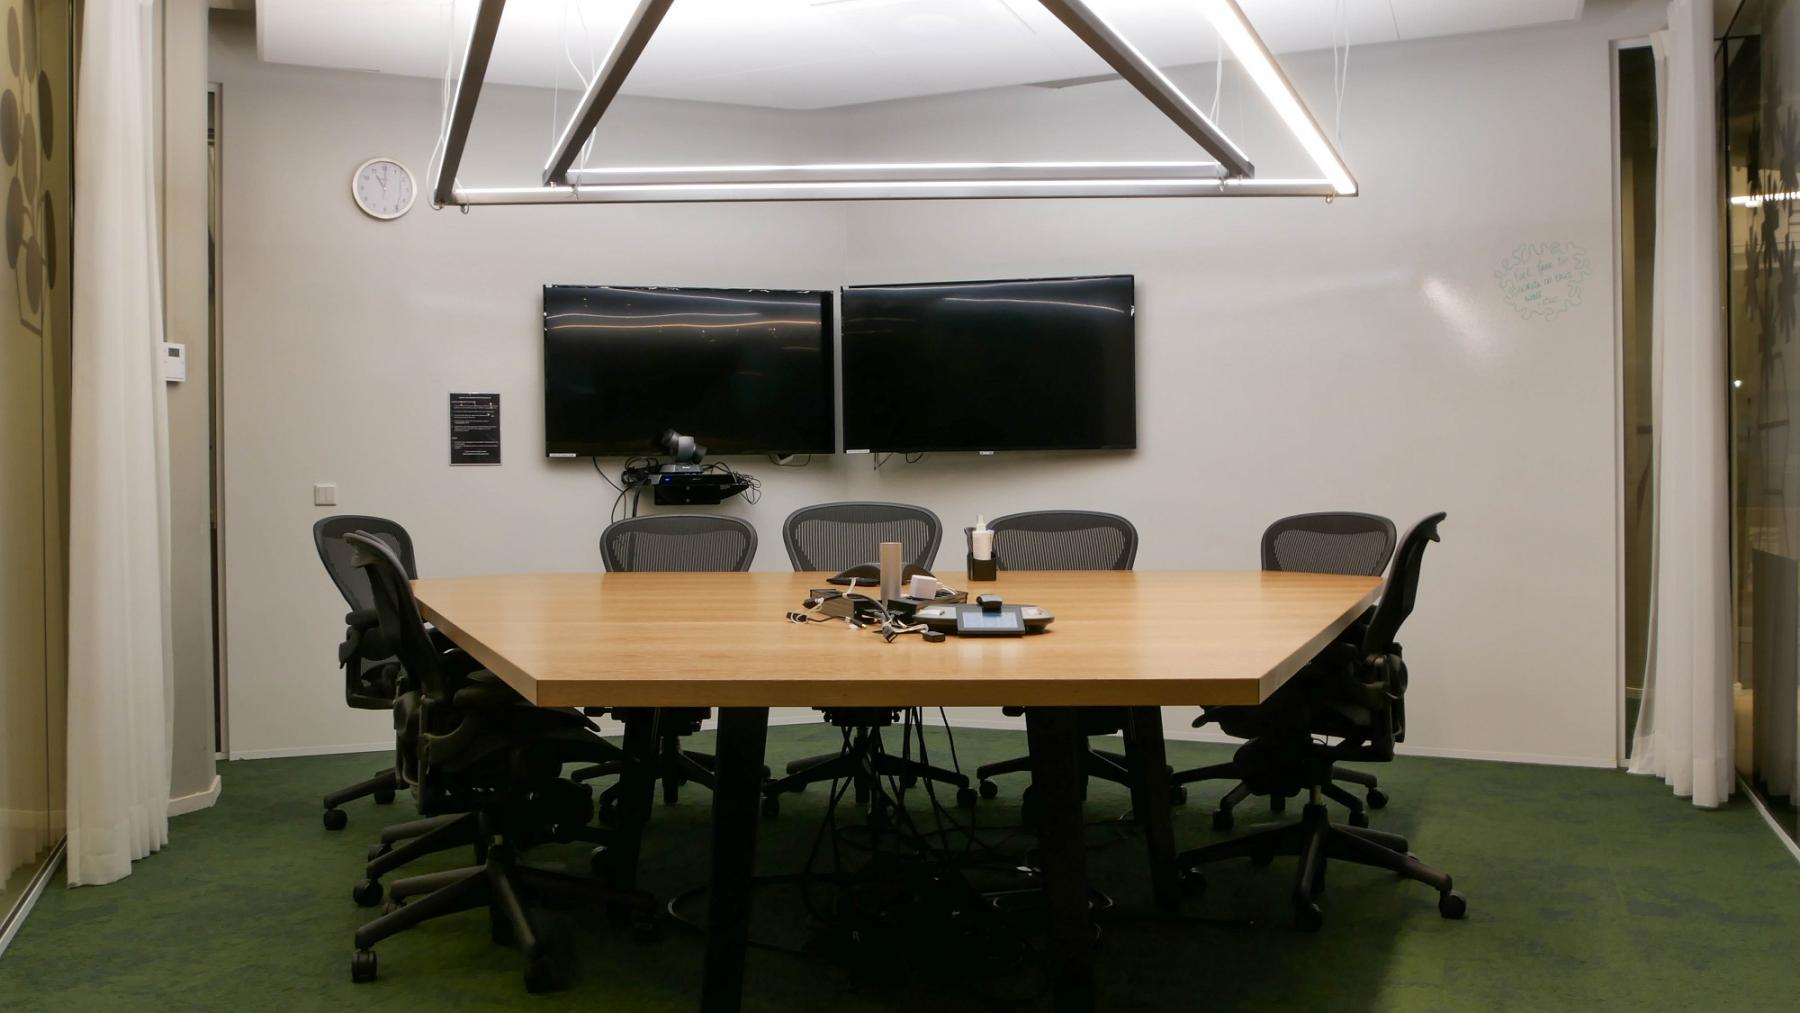 meeting room small table and chairs two screens